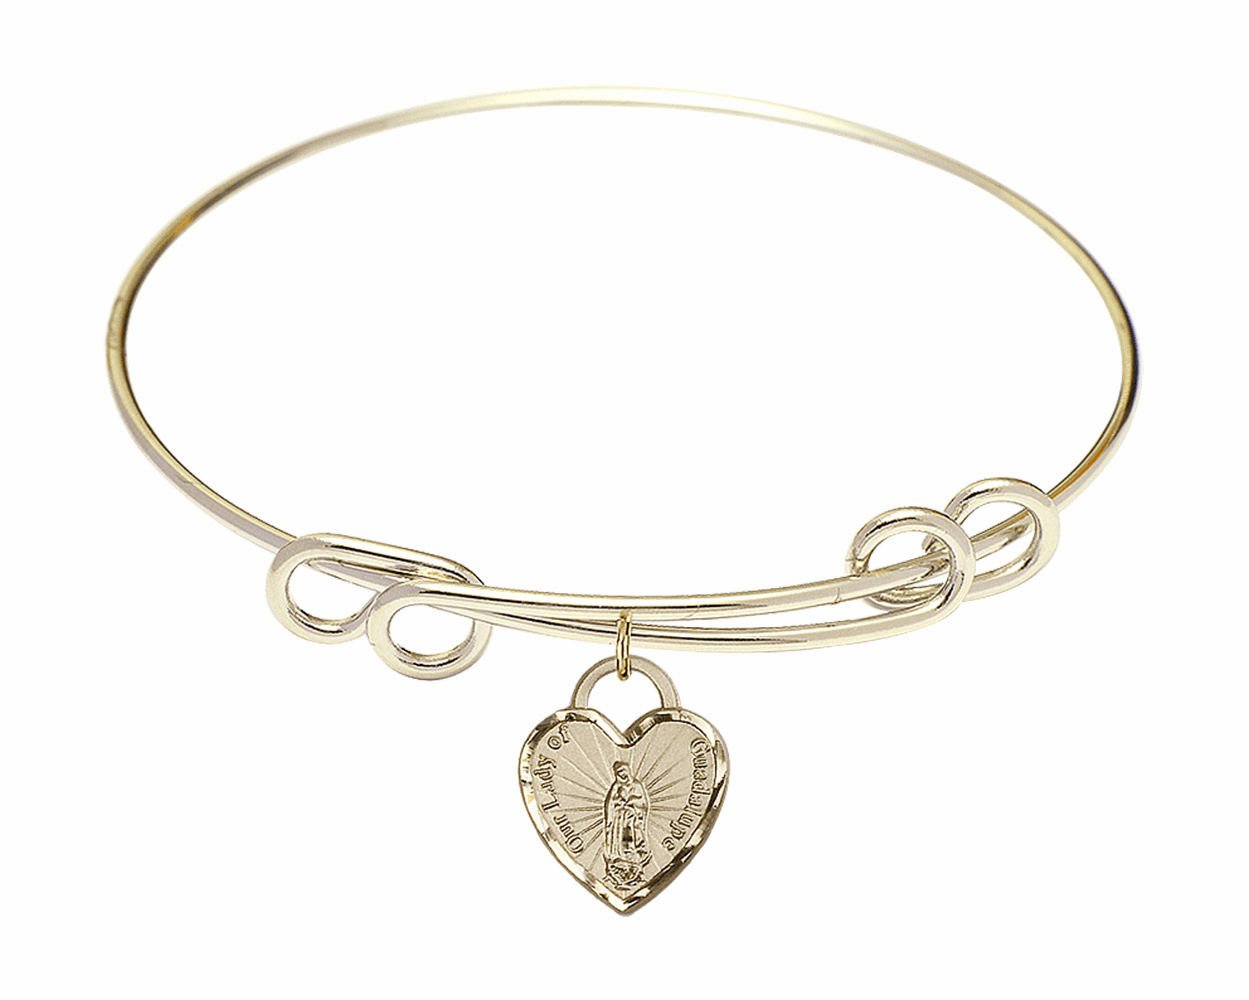 Round Double Loop Bangle Bracelet w/Our Lady of Guadalupe Heart Charm by Bliss Mfg